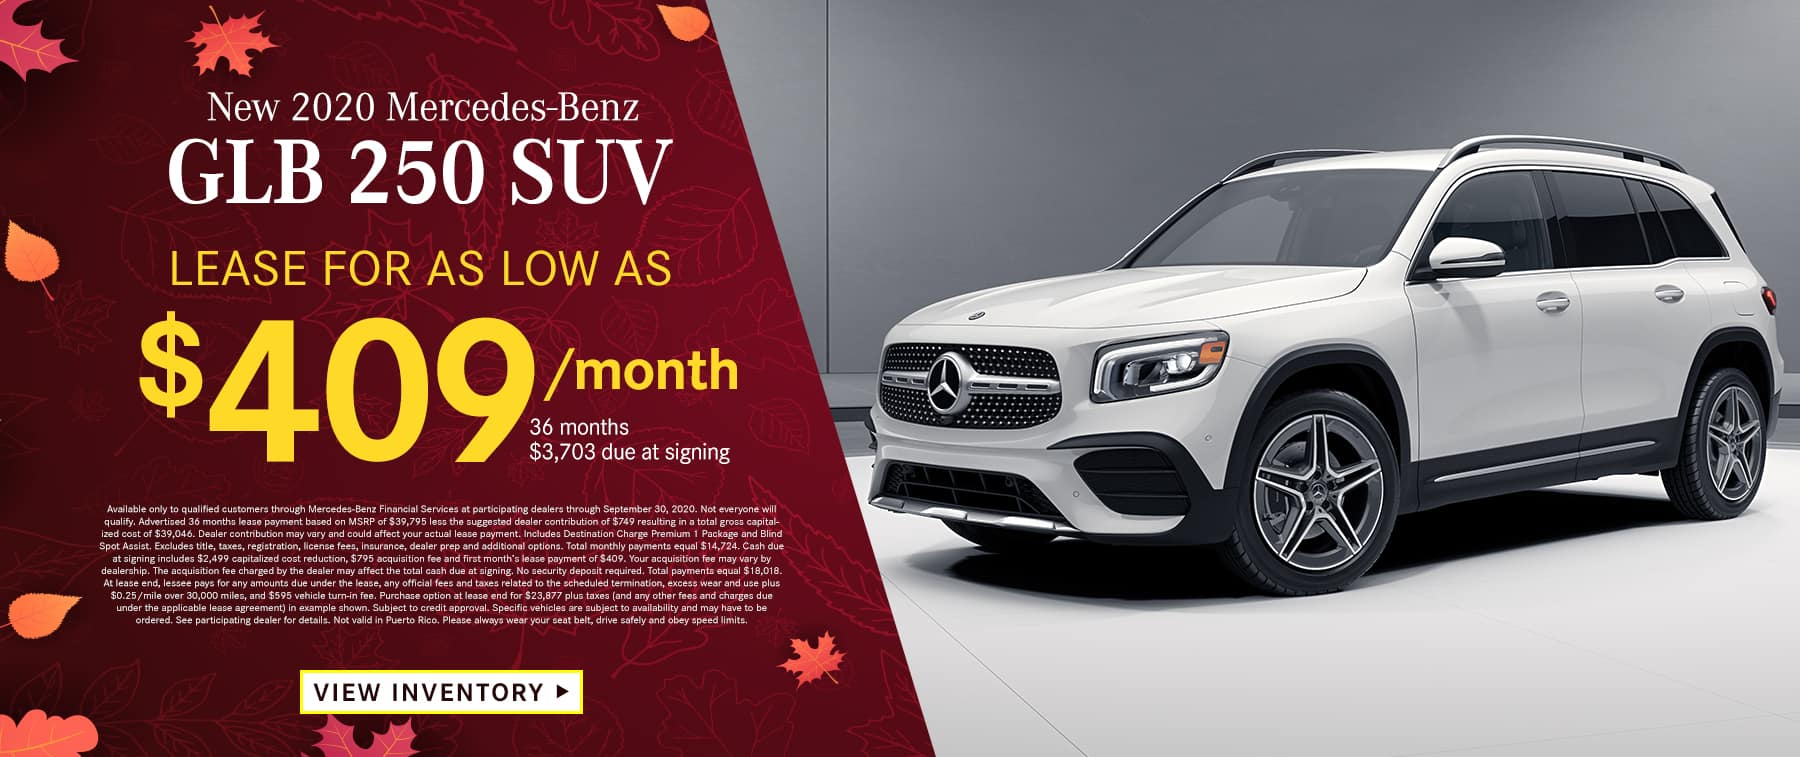 2020 GLB 250 SUV Lease as low as $399 Per Month 36 Months/10k Miles $3,693 Due at signing